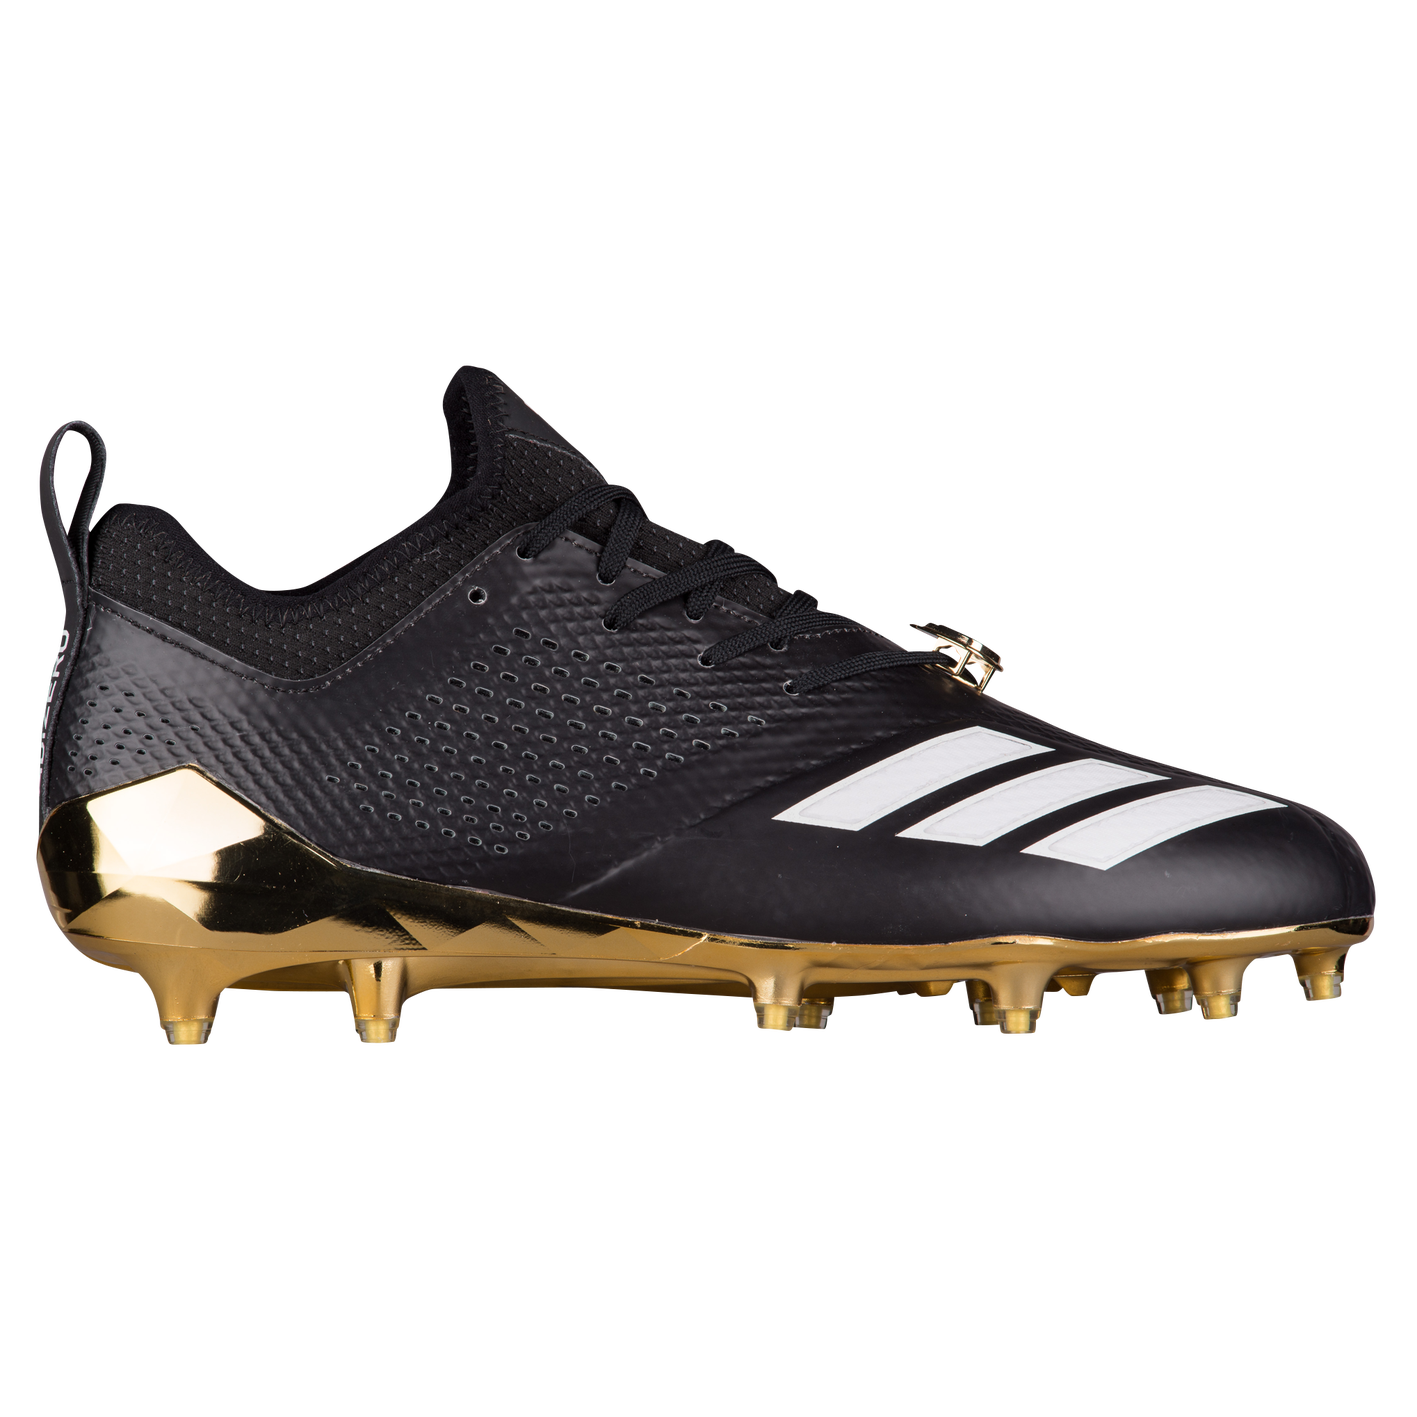 b3d9229d425fe6 adidas adiZero 5-Star 7.0 adiMoji - Men s - Football - Shoes - Black ...